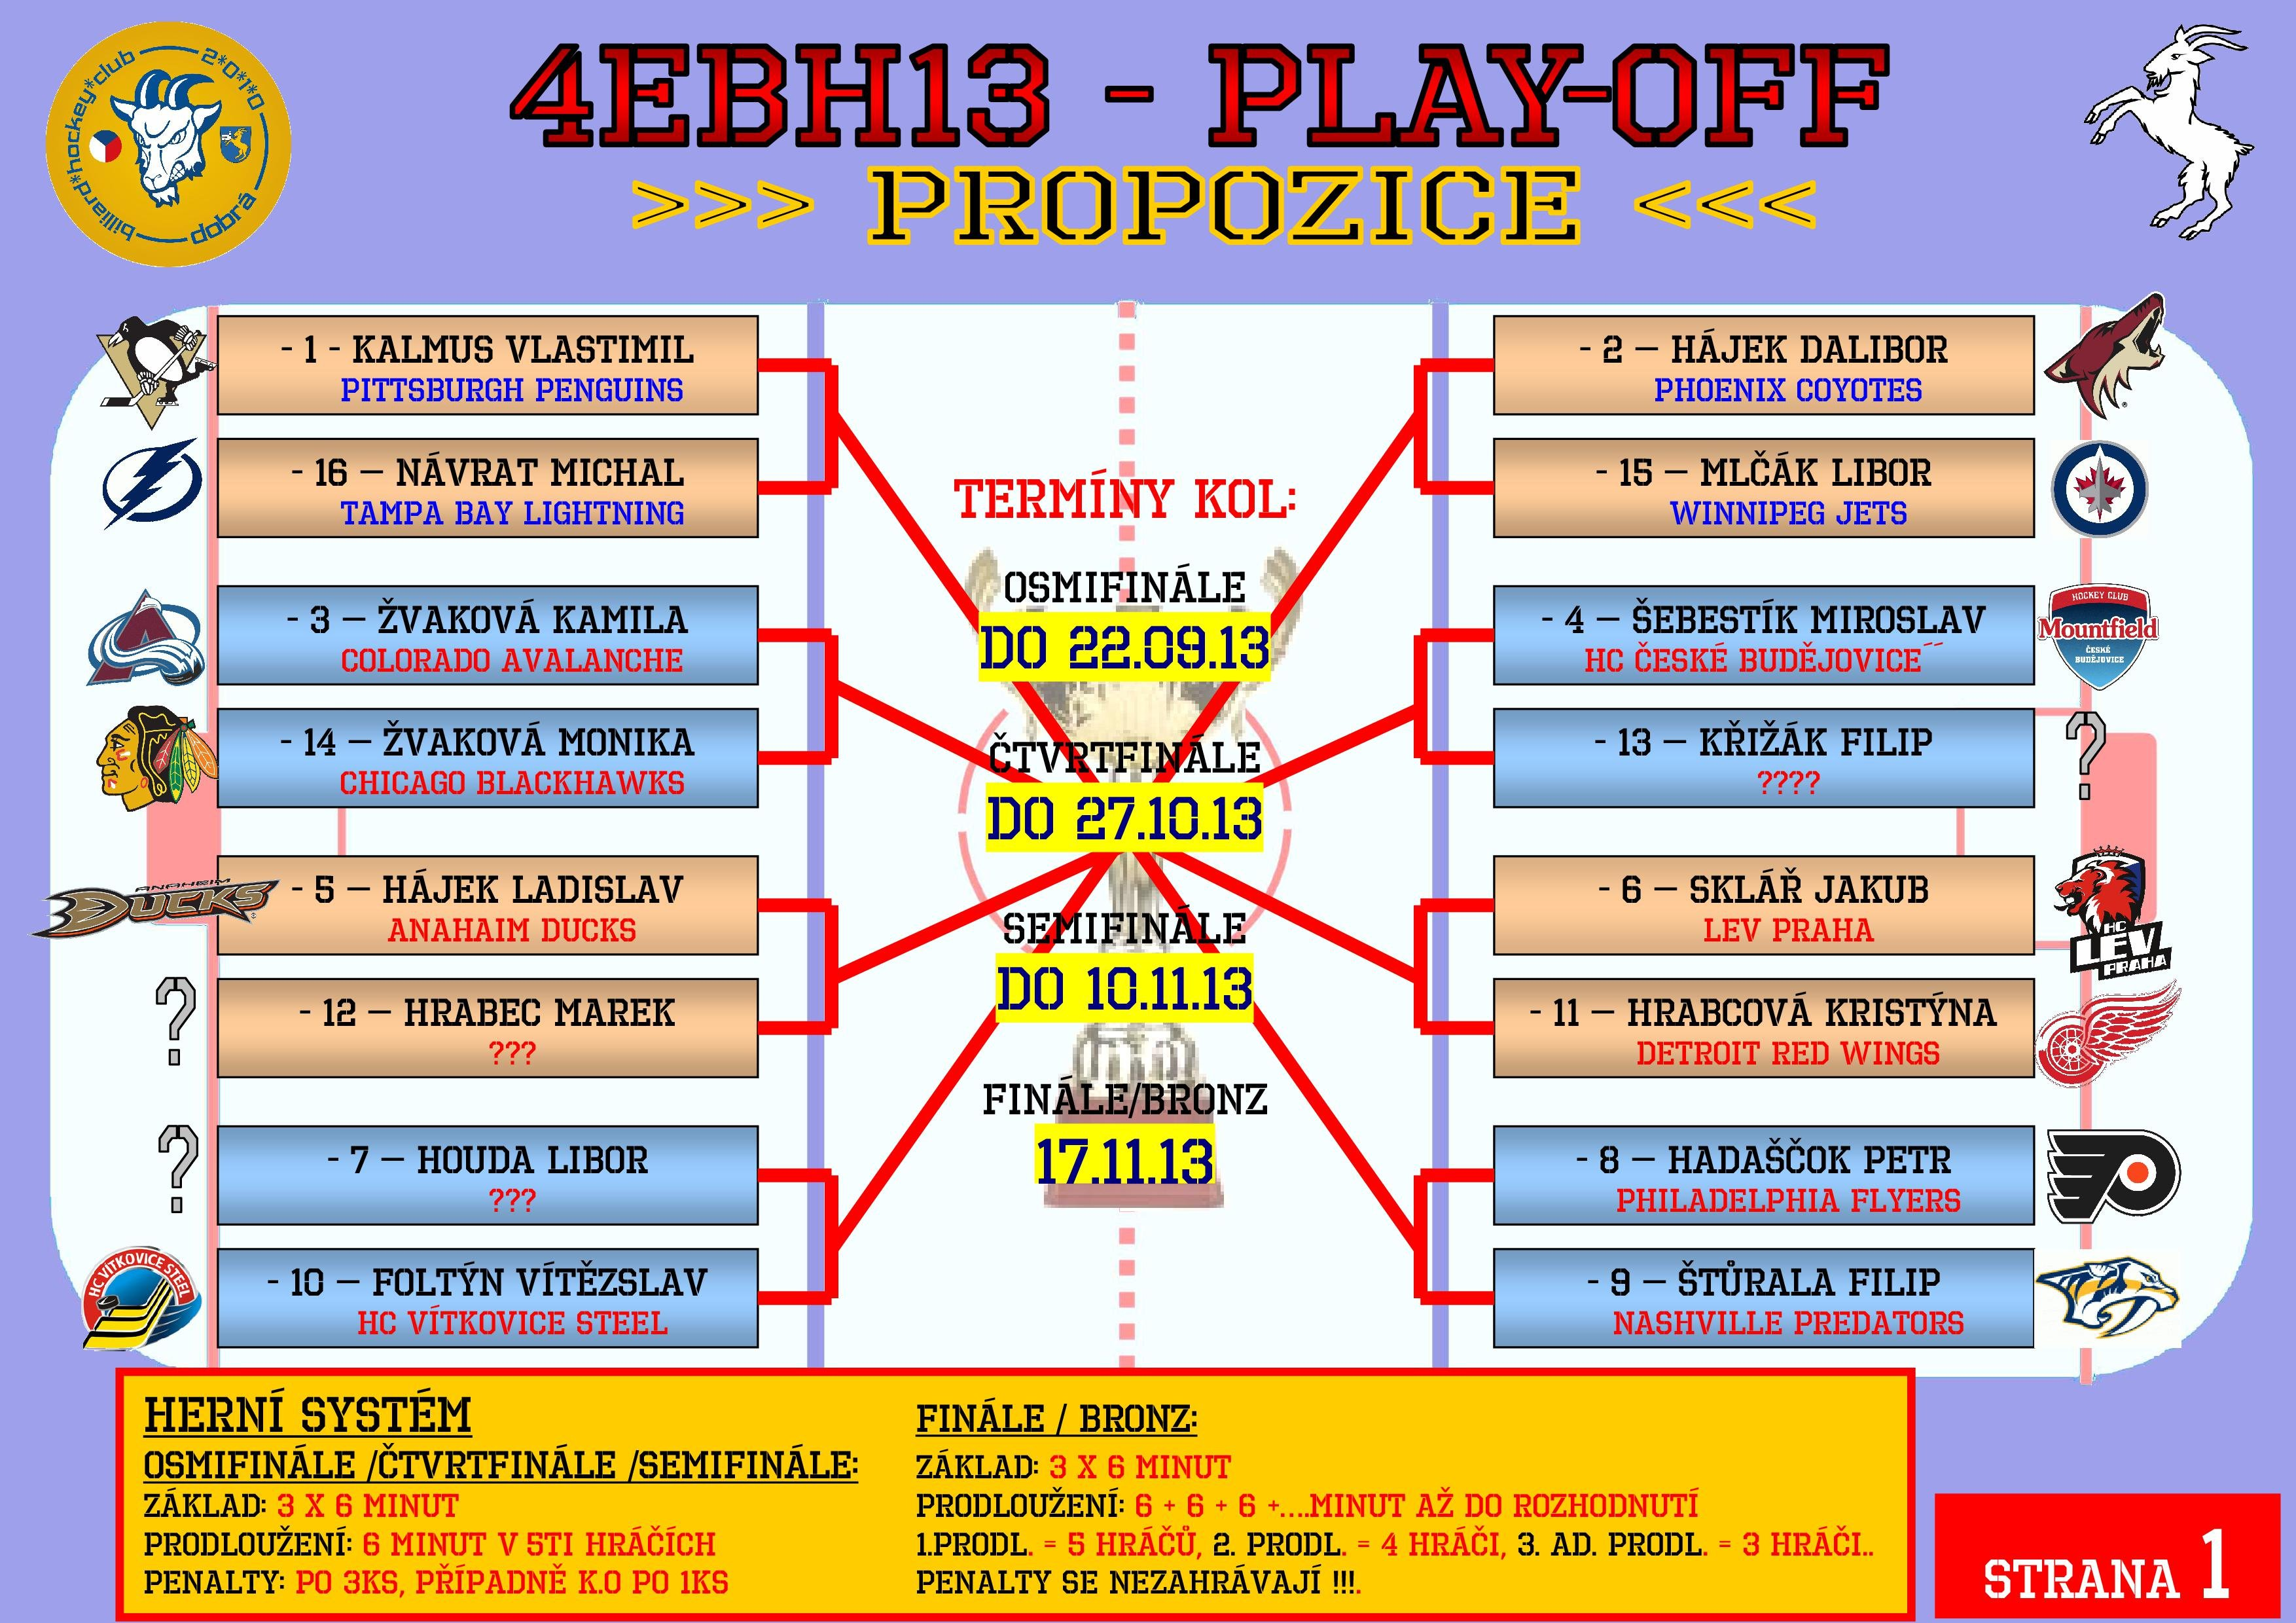 4EBH13 PLAY-OFF